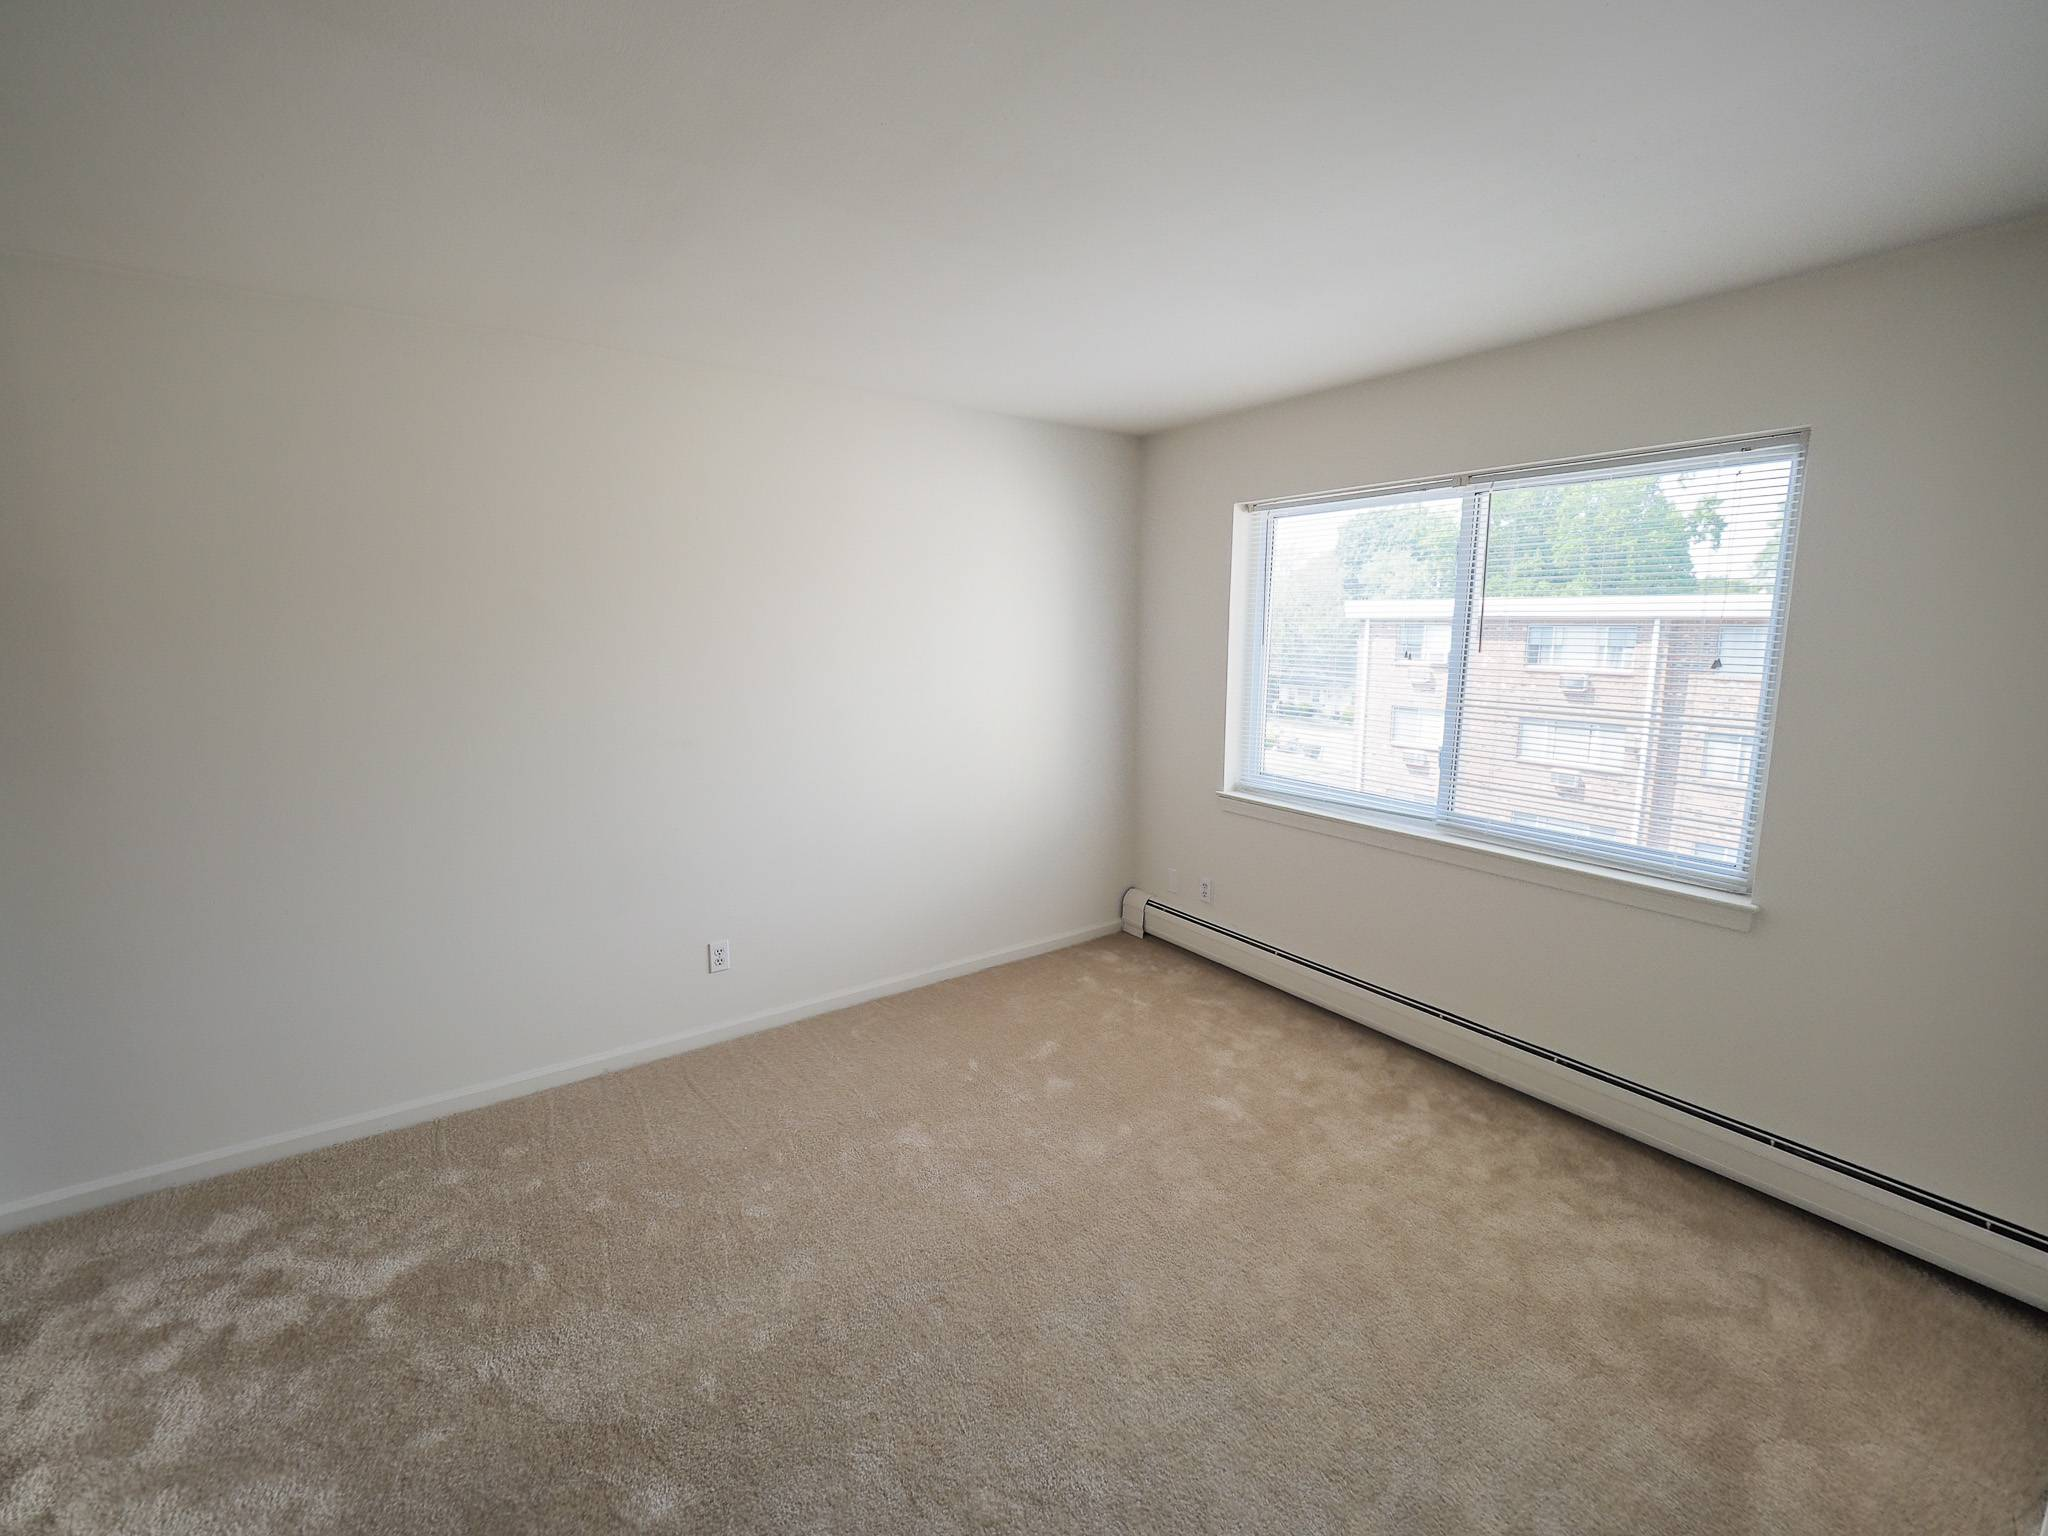 apartments for rent bridgeport, ct & norwalk, ct | one bedroom